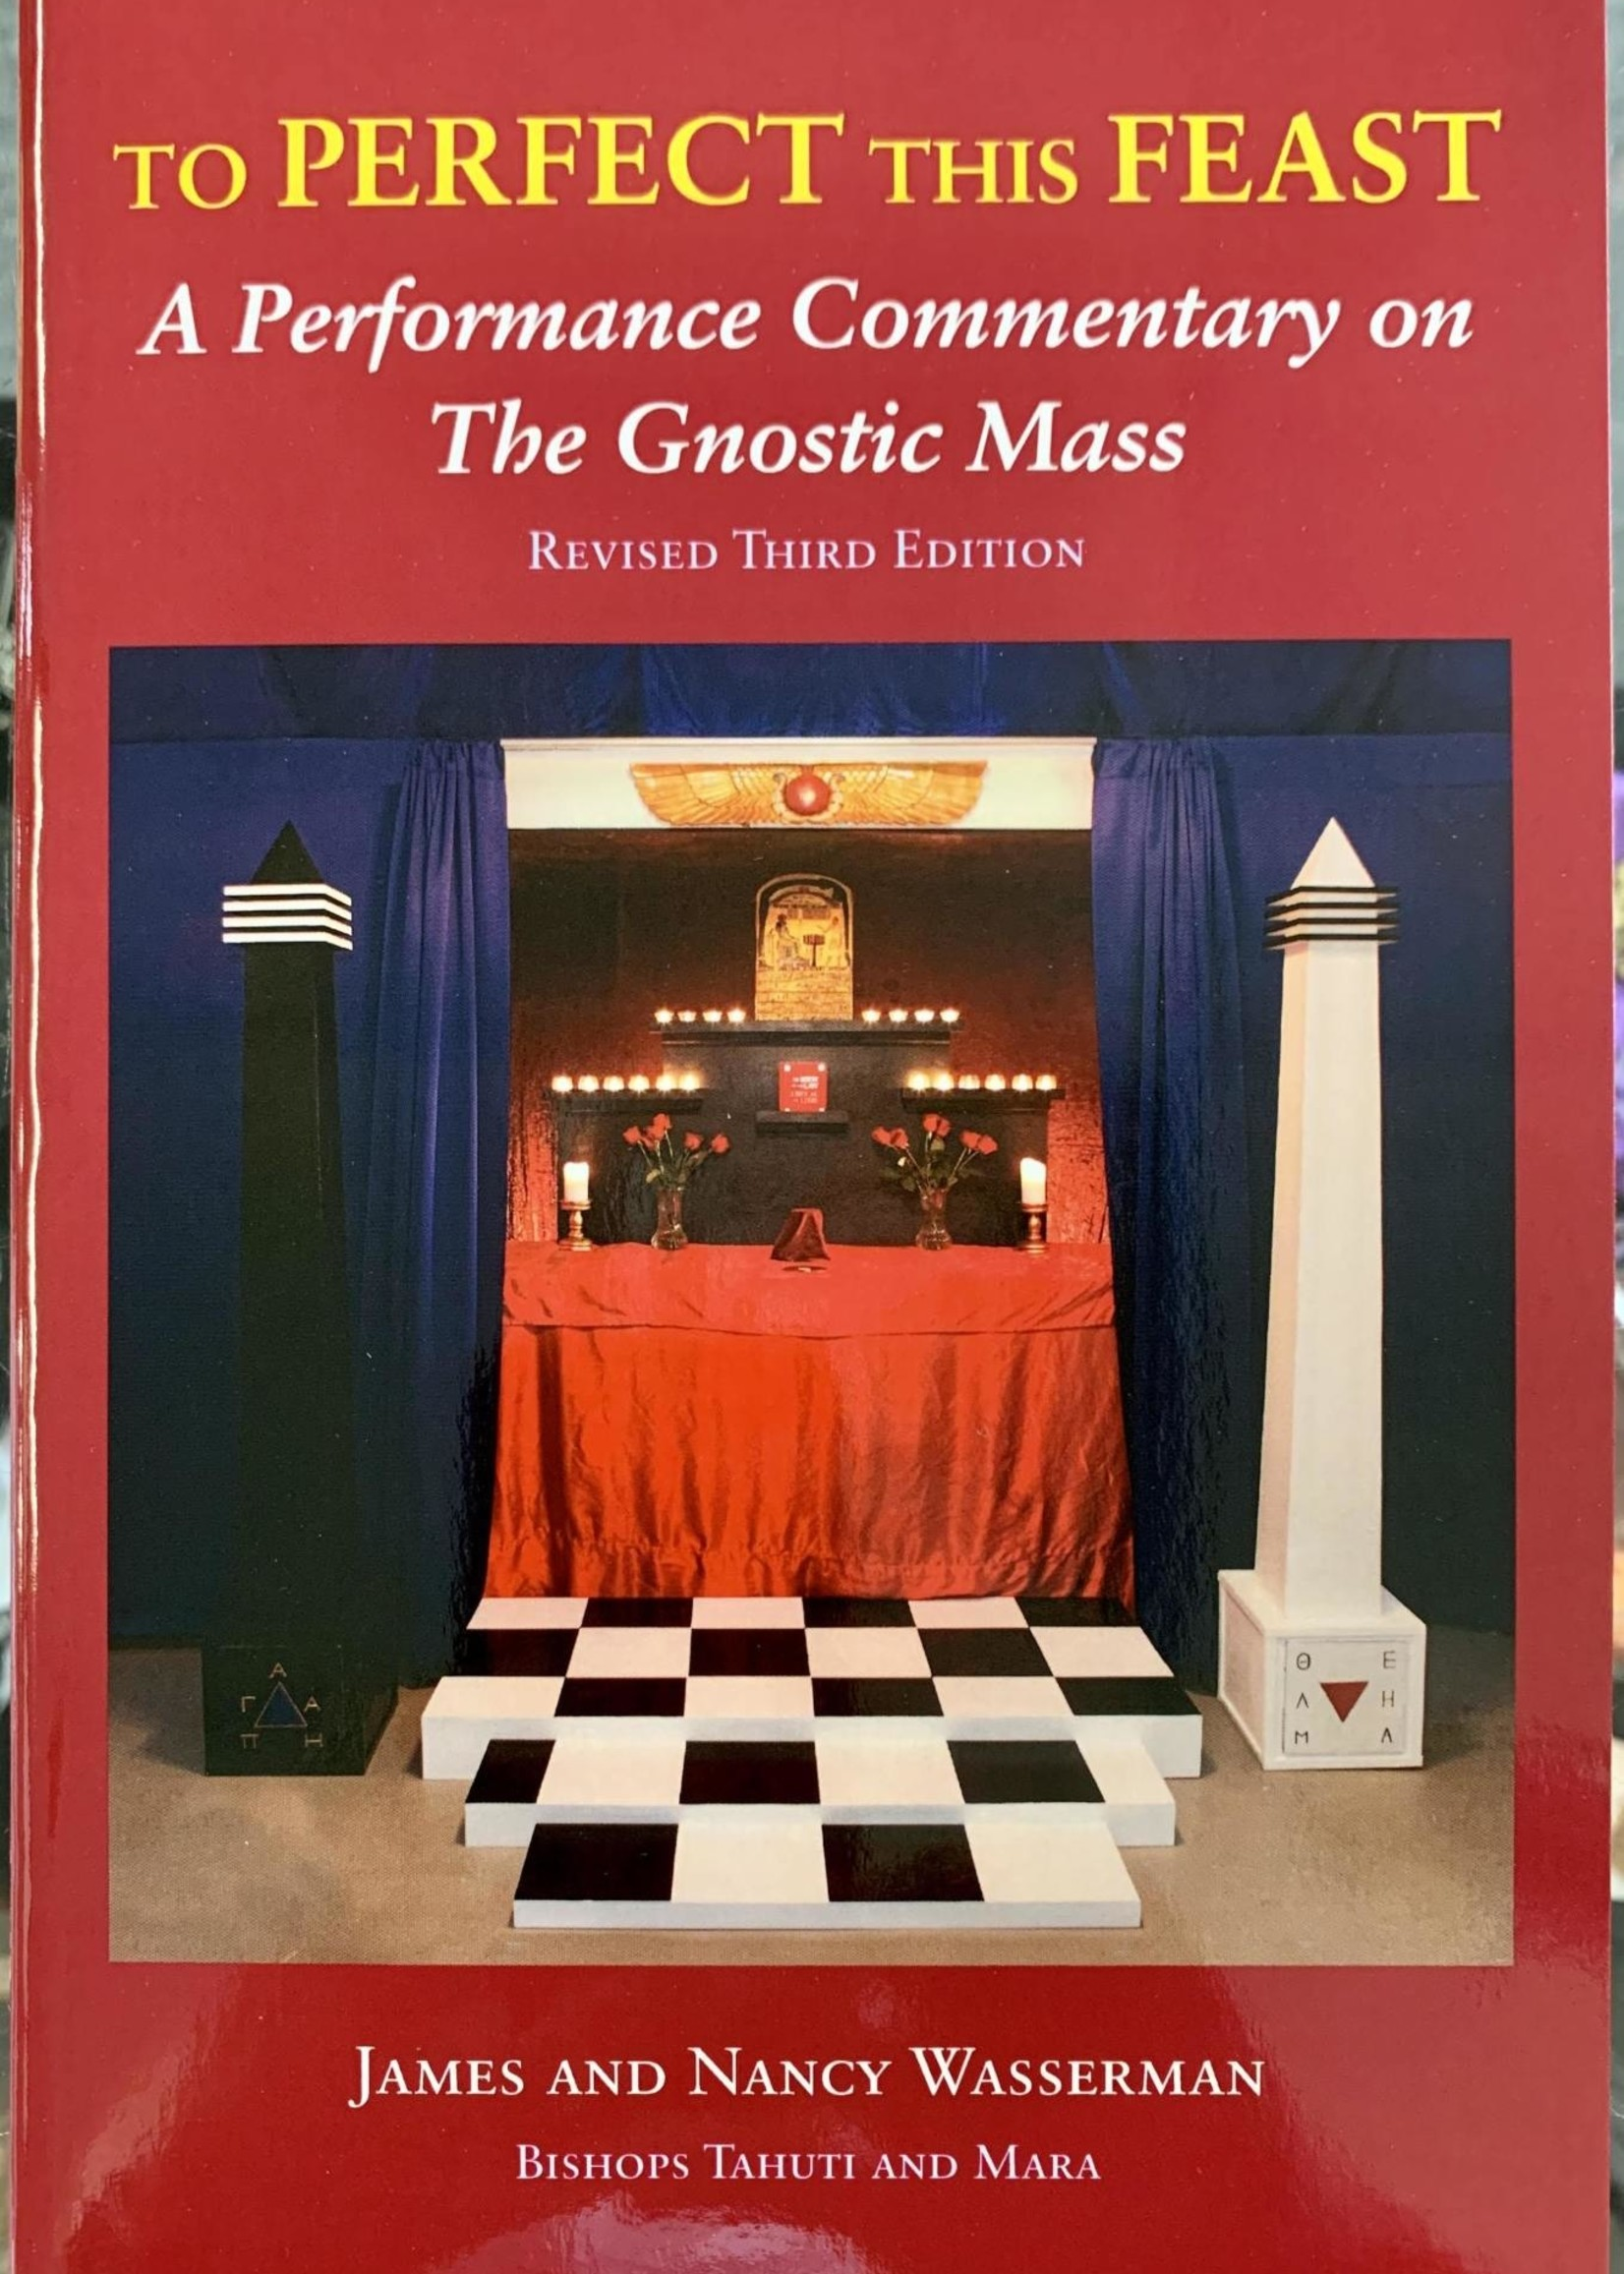 To Perfect This Feast A Performance Commentary on the Gnostic Mass - James Wasserman, Nancy Wasserman, Aleister Crowley